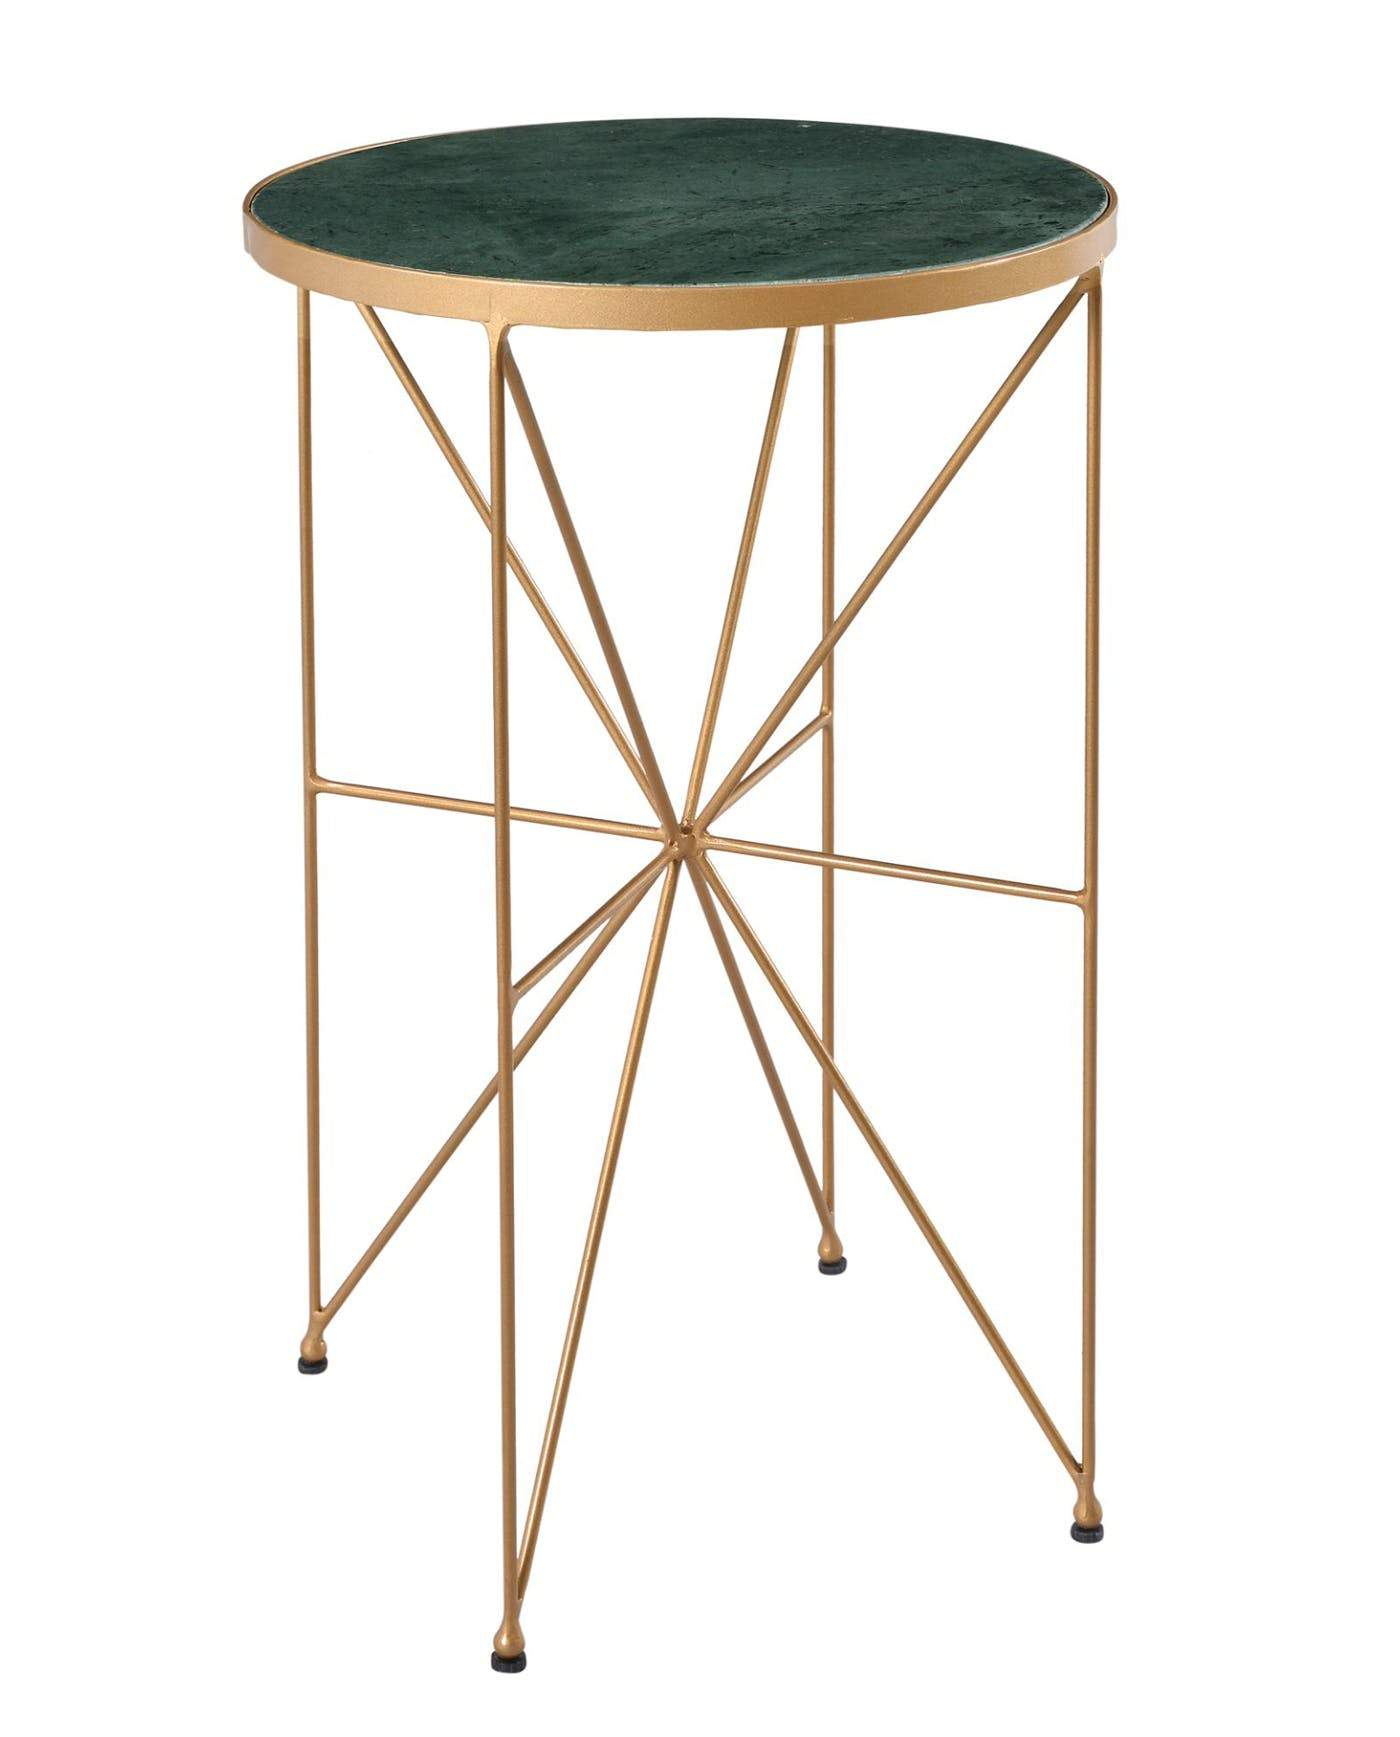 marble top accent table furniture fair dining chairs with arms rustic unique coffee tables toronto signy drum target throw rugs tall pub set square outdoor umbrella dale tiffany